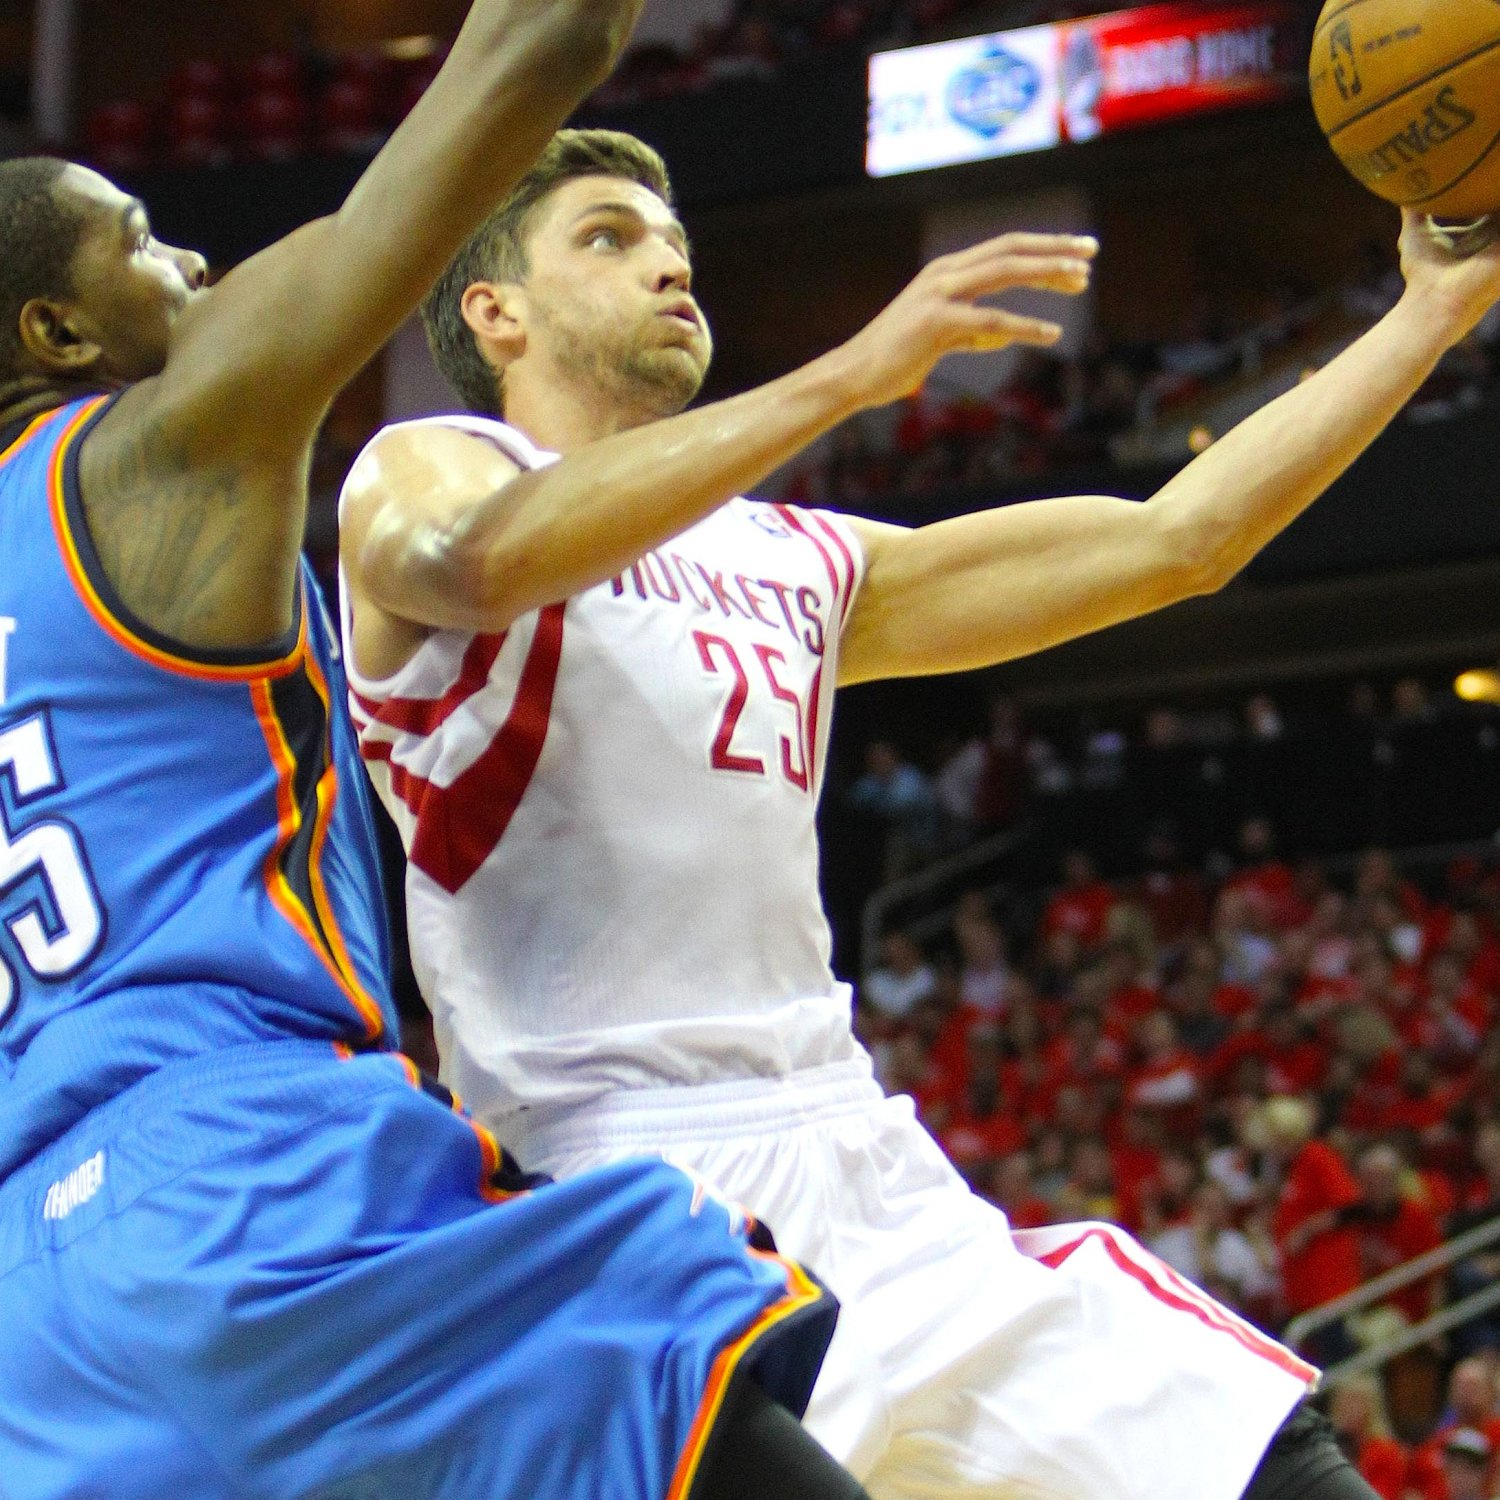 Houston Rockets Vs Okc: OKC Thunder Vs. Houston Rockets: Game 4 Score, Highlights